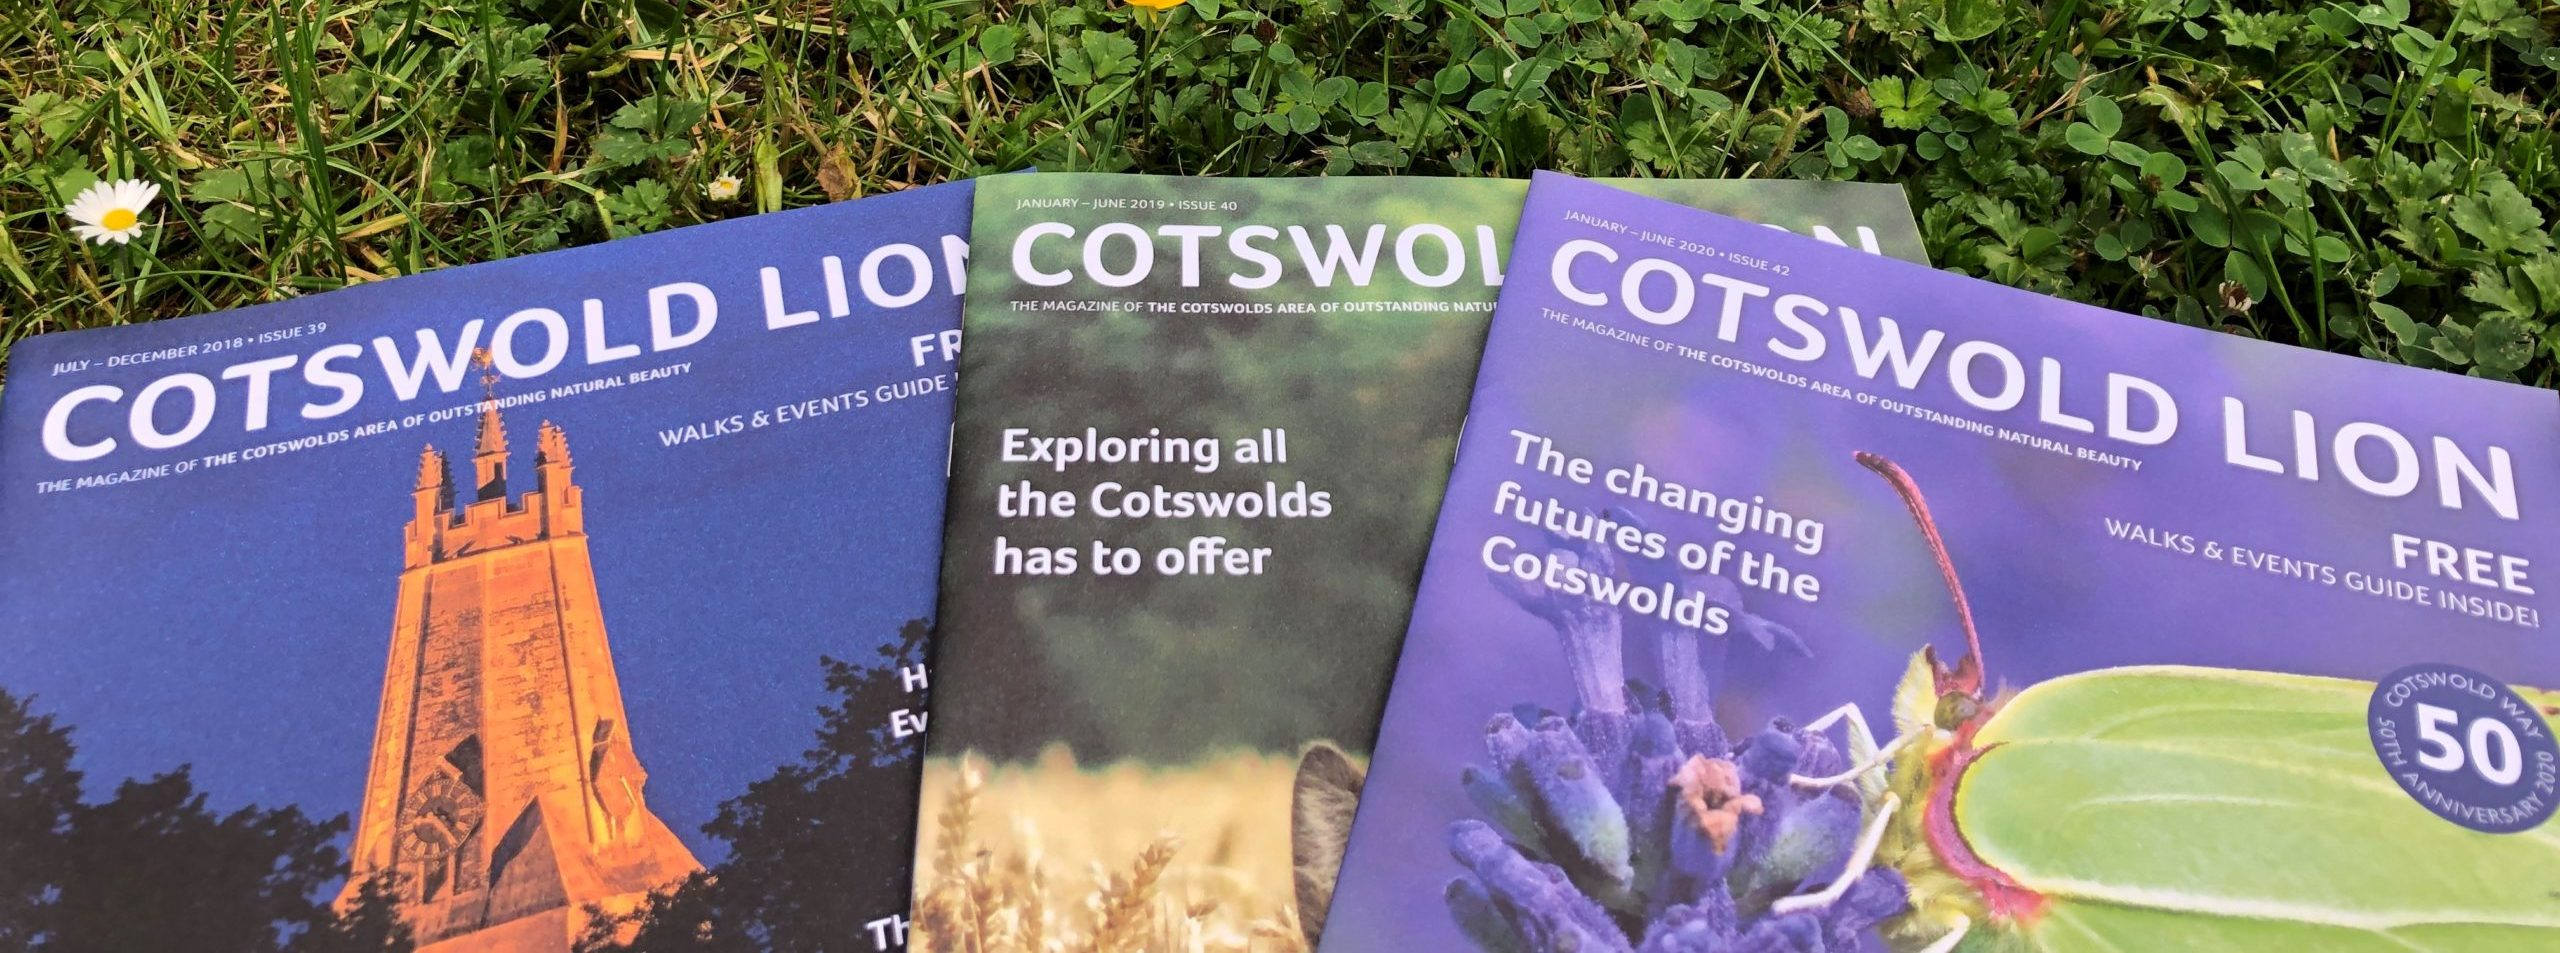 Cotswold Lion front covers